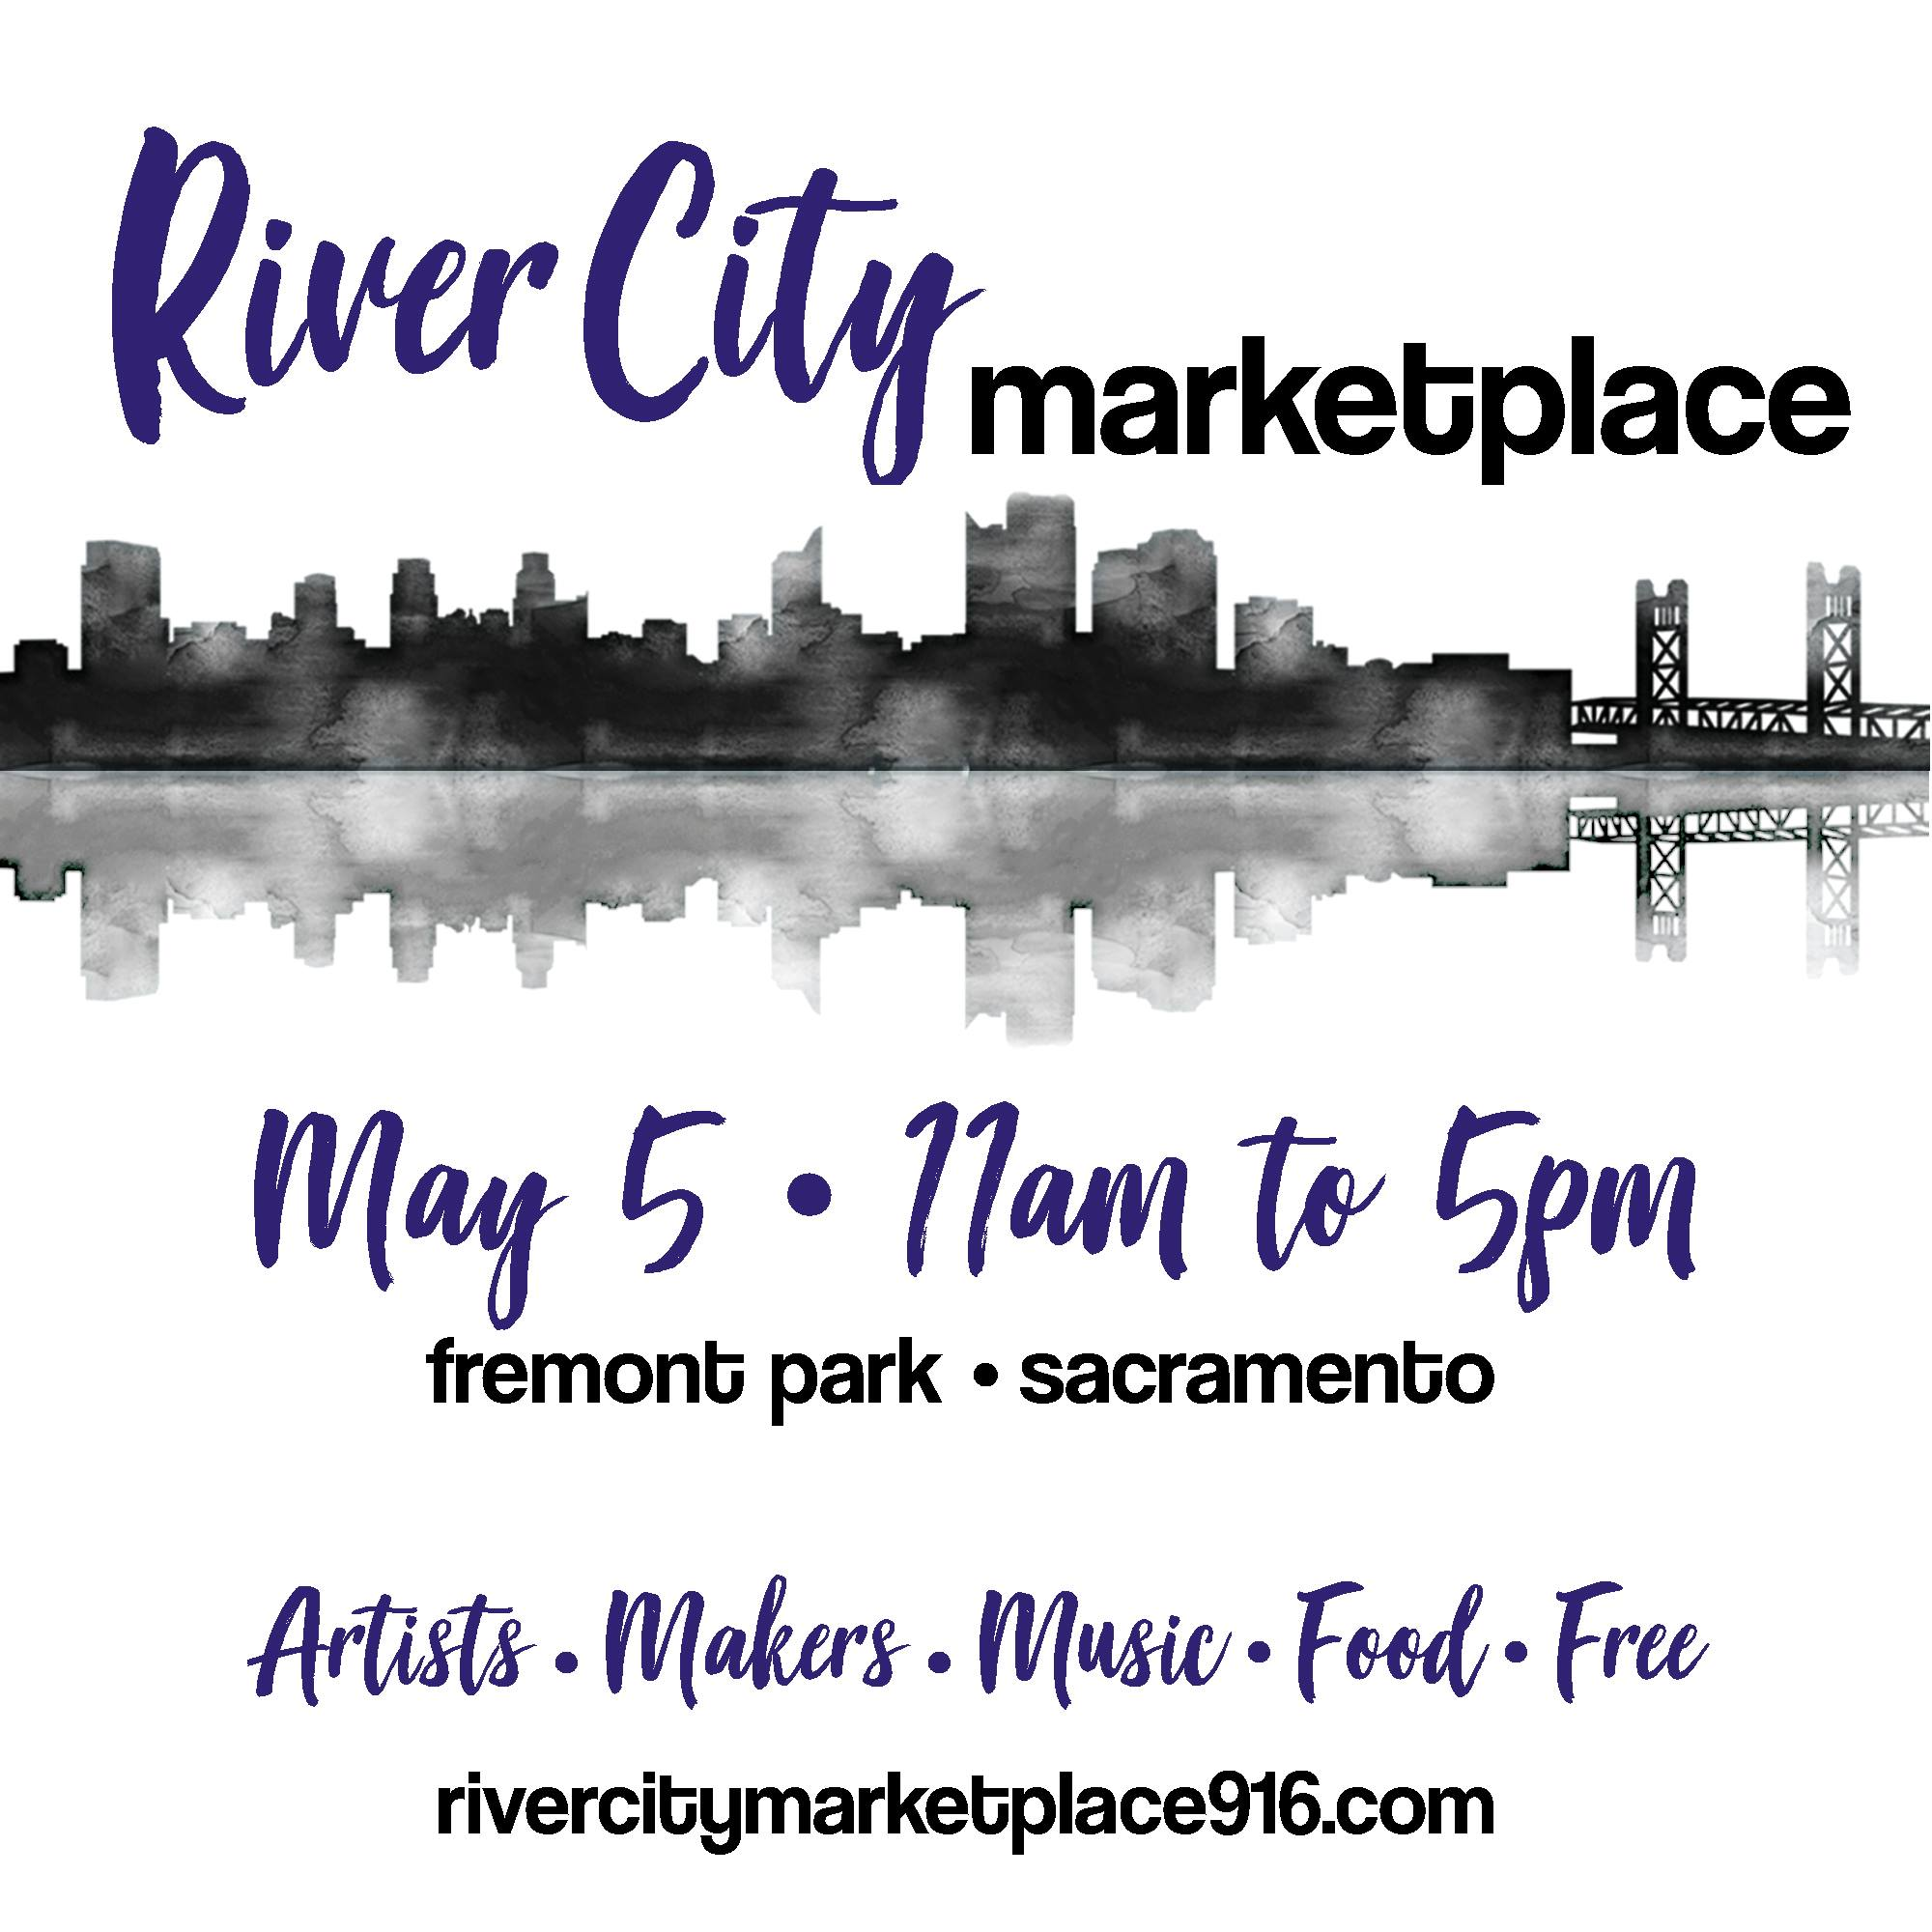 Shop local, support art, handmade goods and small businesses of Sacramento. River City Marketplace will be hosting over 100 vendors on Cinco De Mayo at Fremont Park. Enjoy live music and local bites while you shop, and see what Sacramento's talent has to offer.